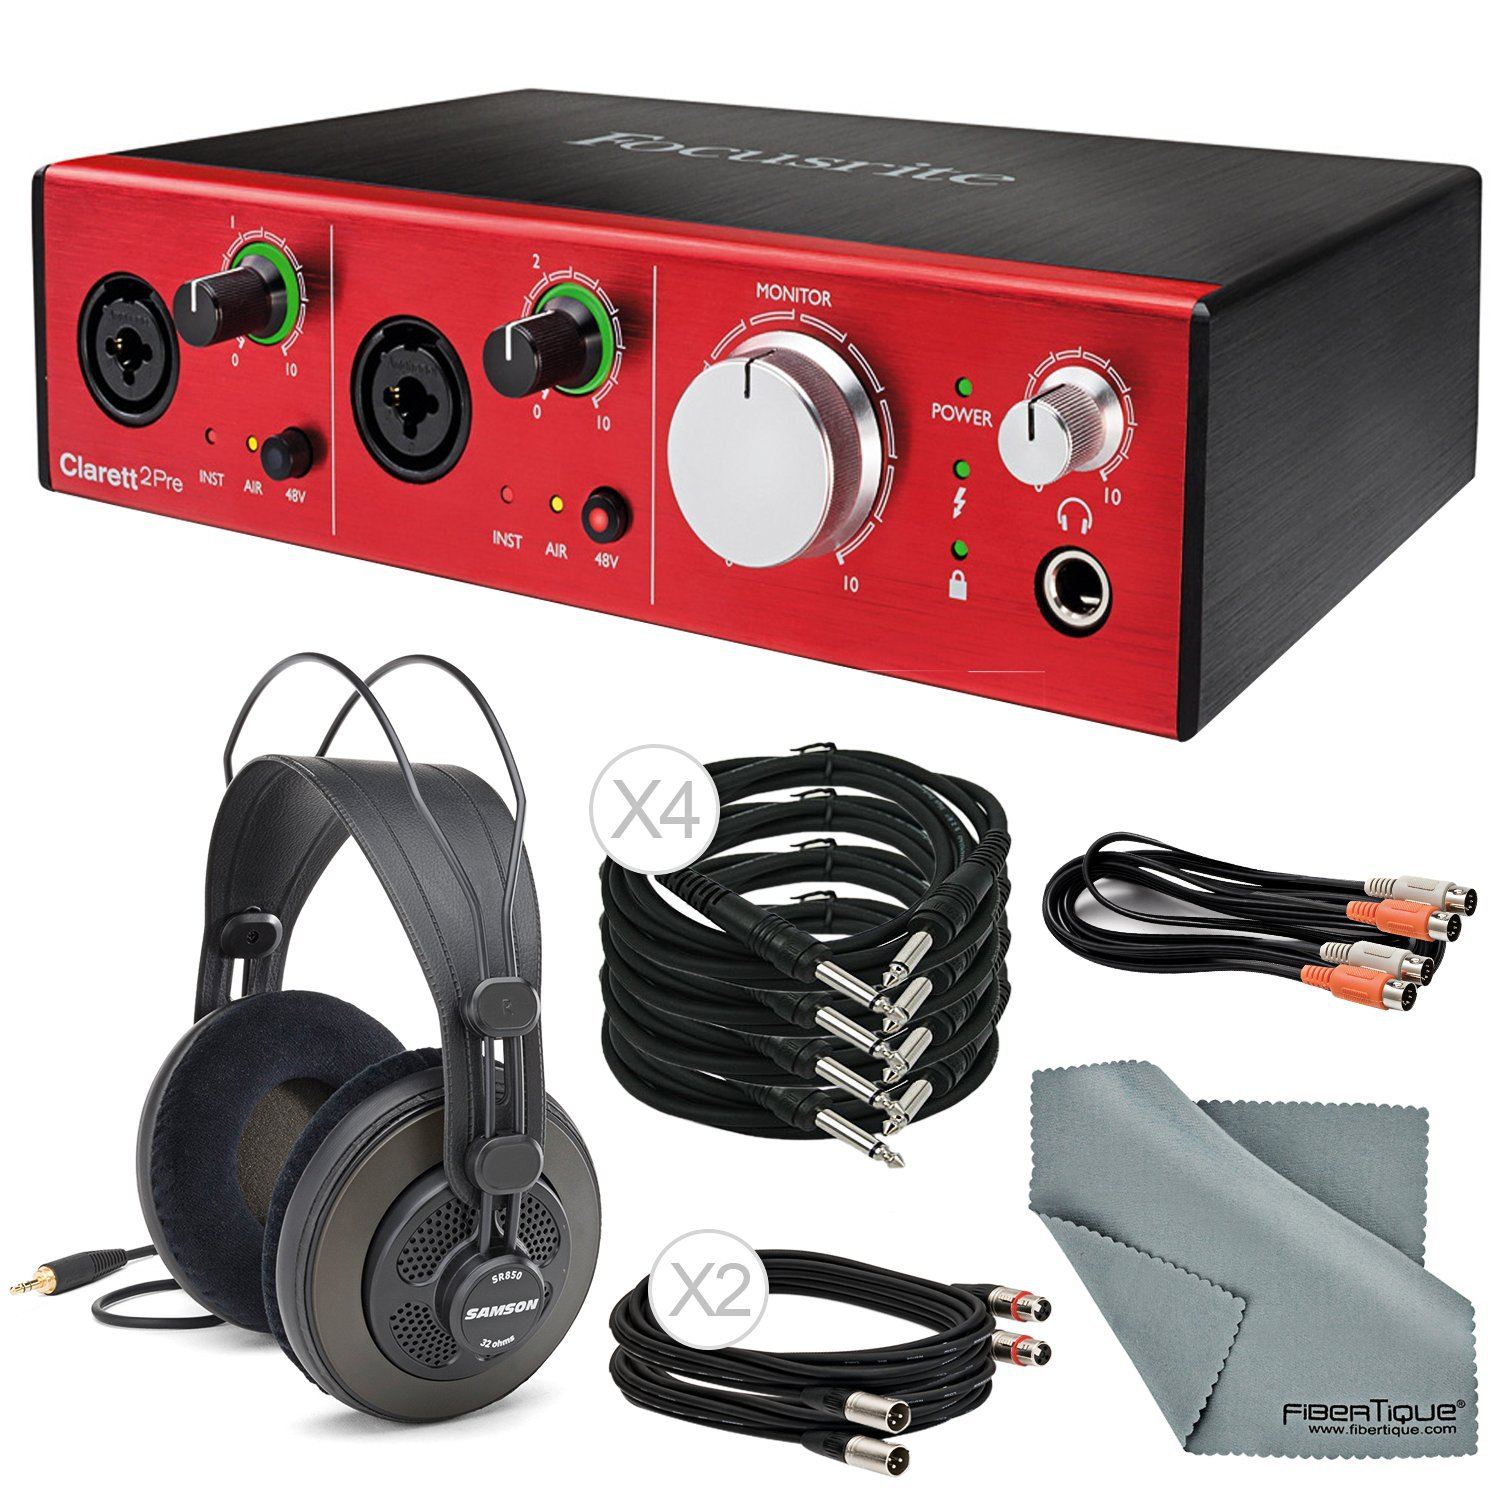 Focusrite Clarett 2Pre - Thunderbolt Audio Interface Deluxe Bundle with 2x XLR Cable +MIDI to 2 MIDI (Dual) Cable + 4 x 1/4 Inch Cable + Samson Studio Headphones + FiberTique Cleaning cloth